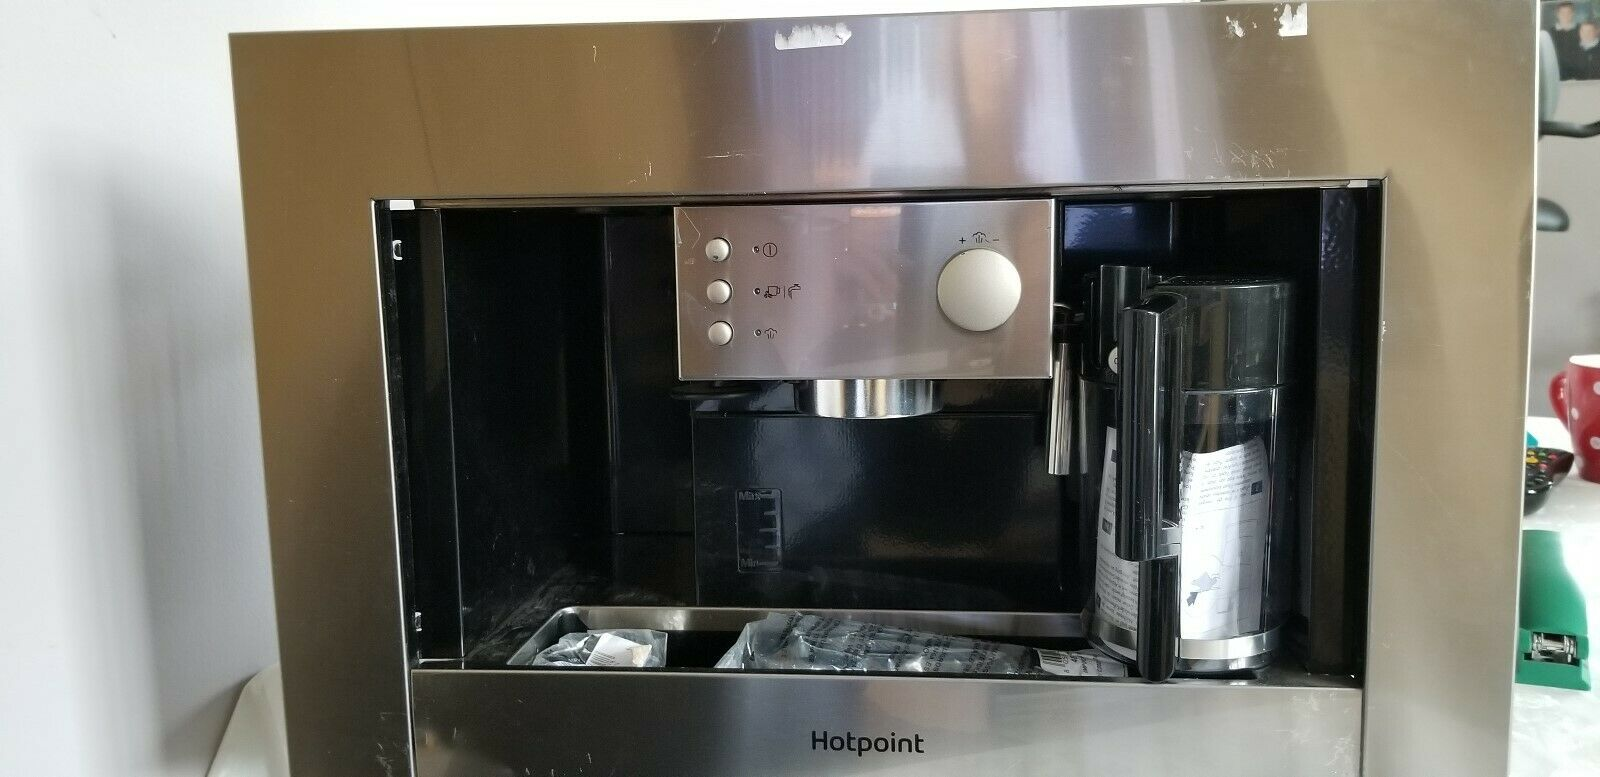 Hotpoint Cm 5038 Ix H Built In Filter Coffee Machine Stainless Steel